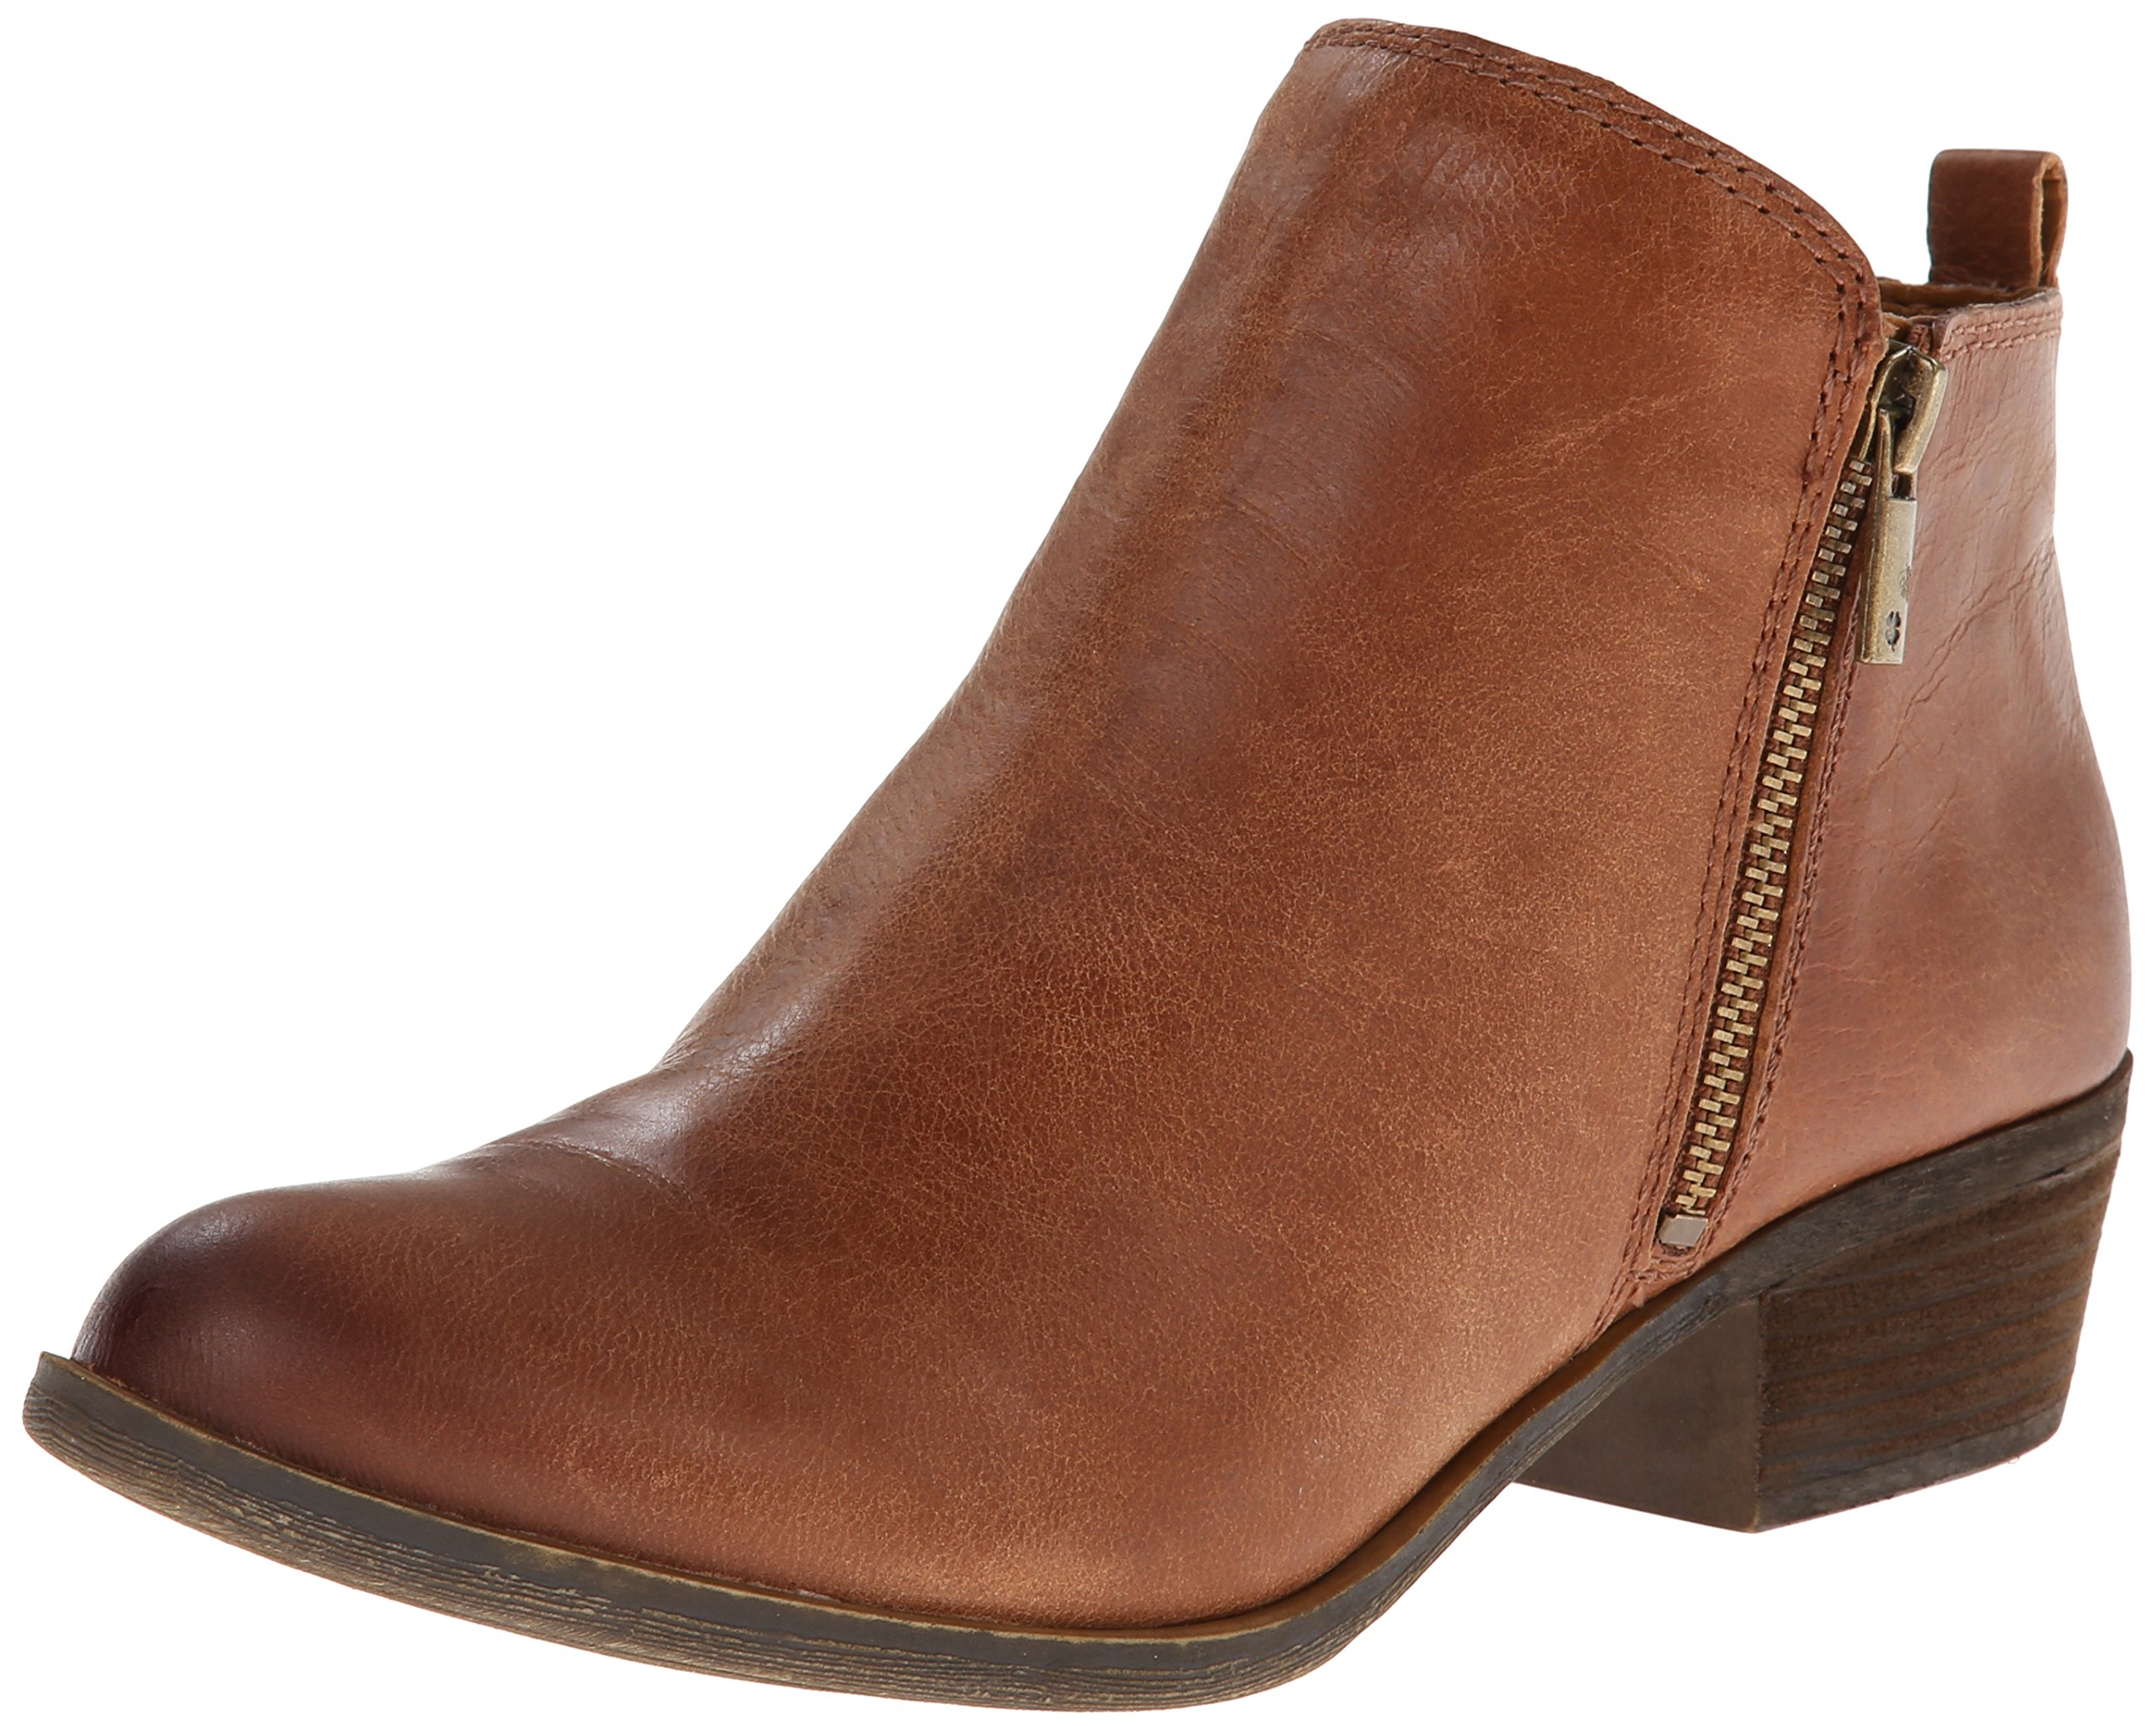 Lucky Brand Women's Basel, Toffee, 7 M US